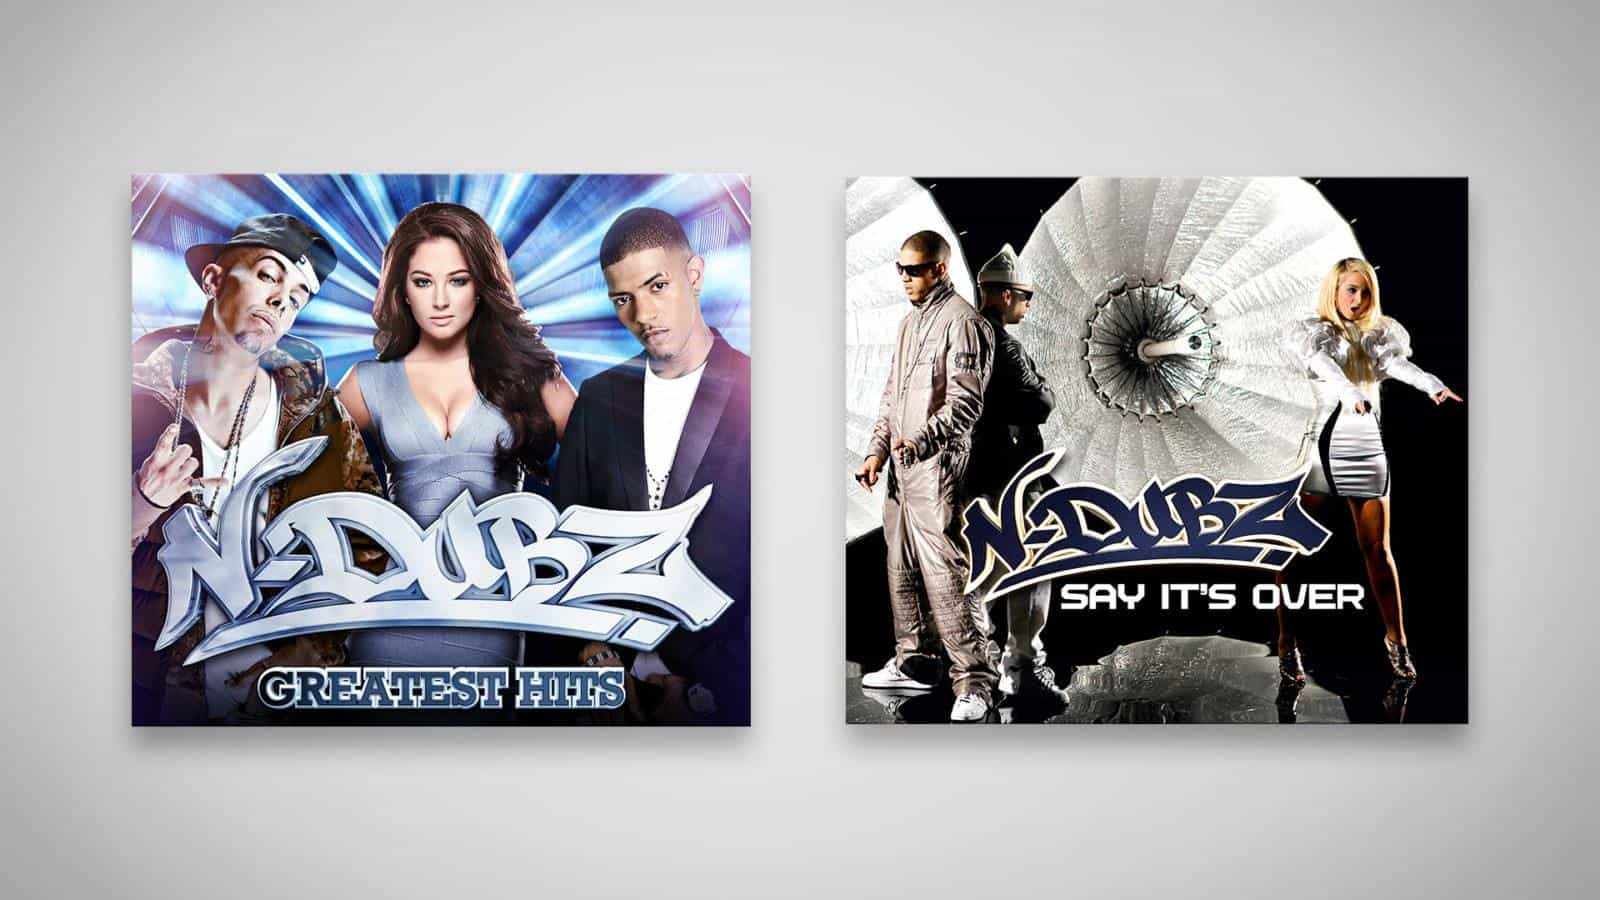 N-Dubz album covers